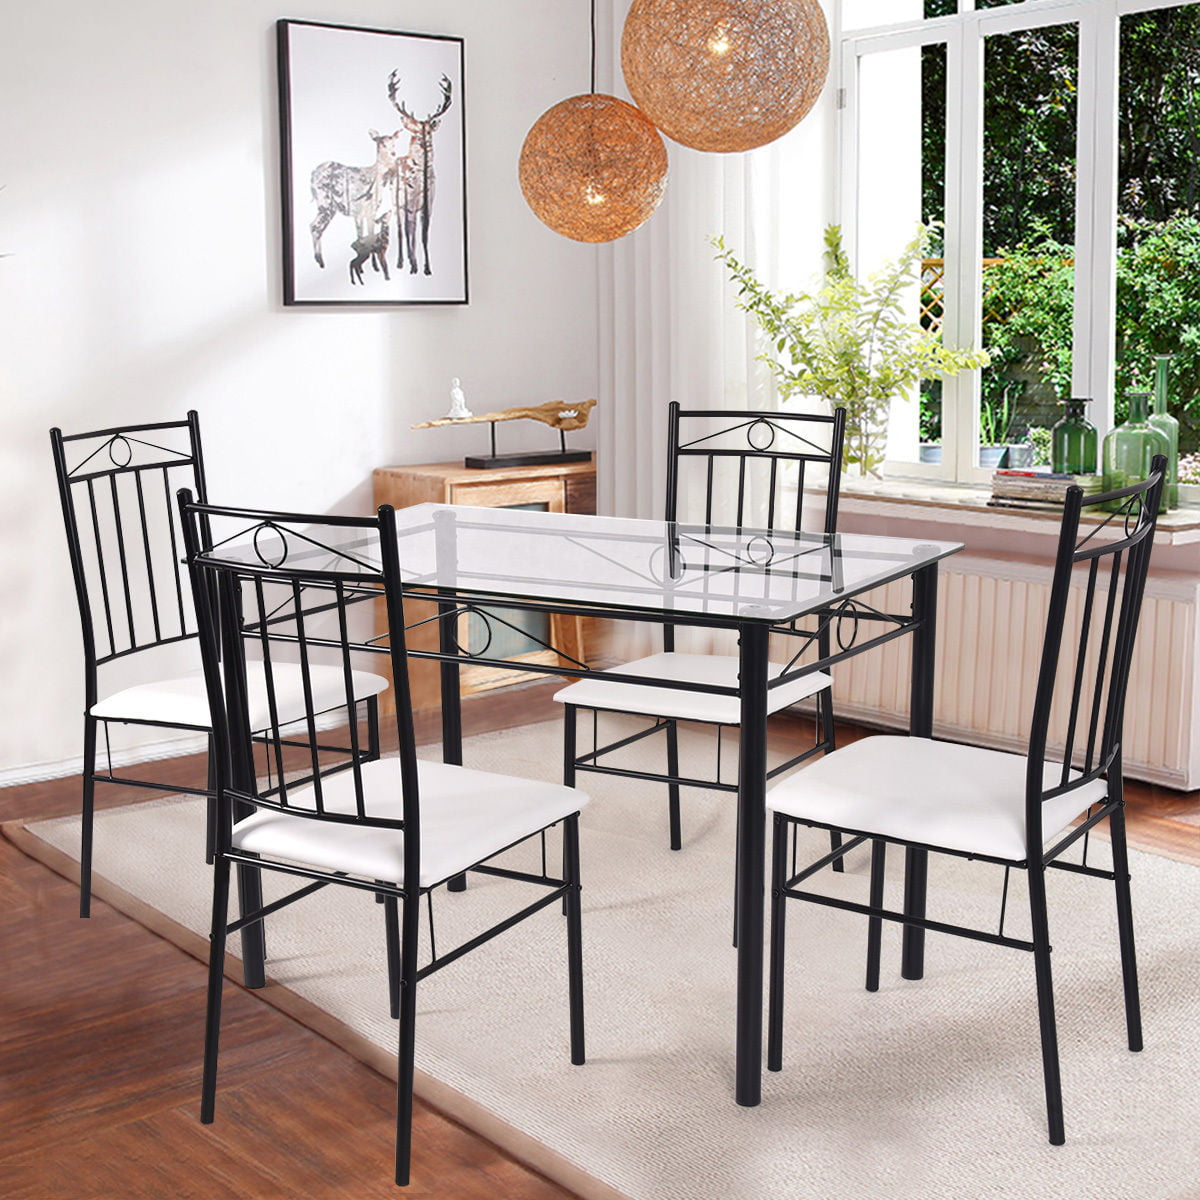 metal dining room sets | Costway 5 Piece Dining Set Glass Metal Table and 4 Chairs ...